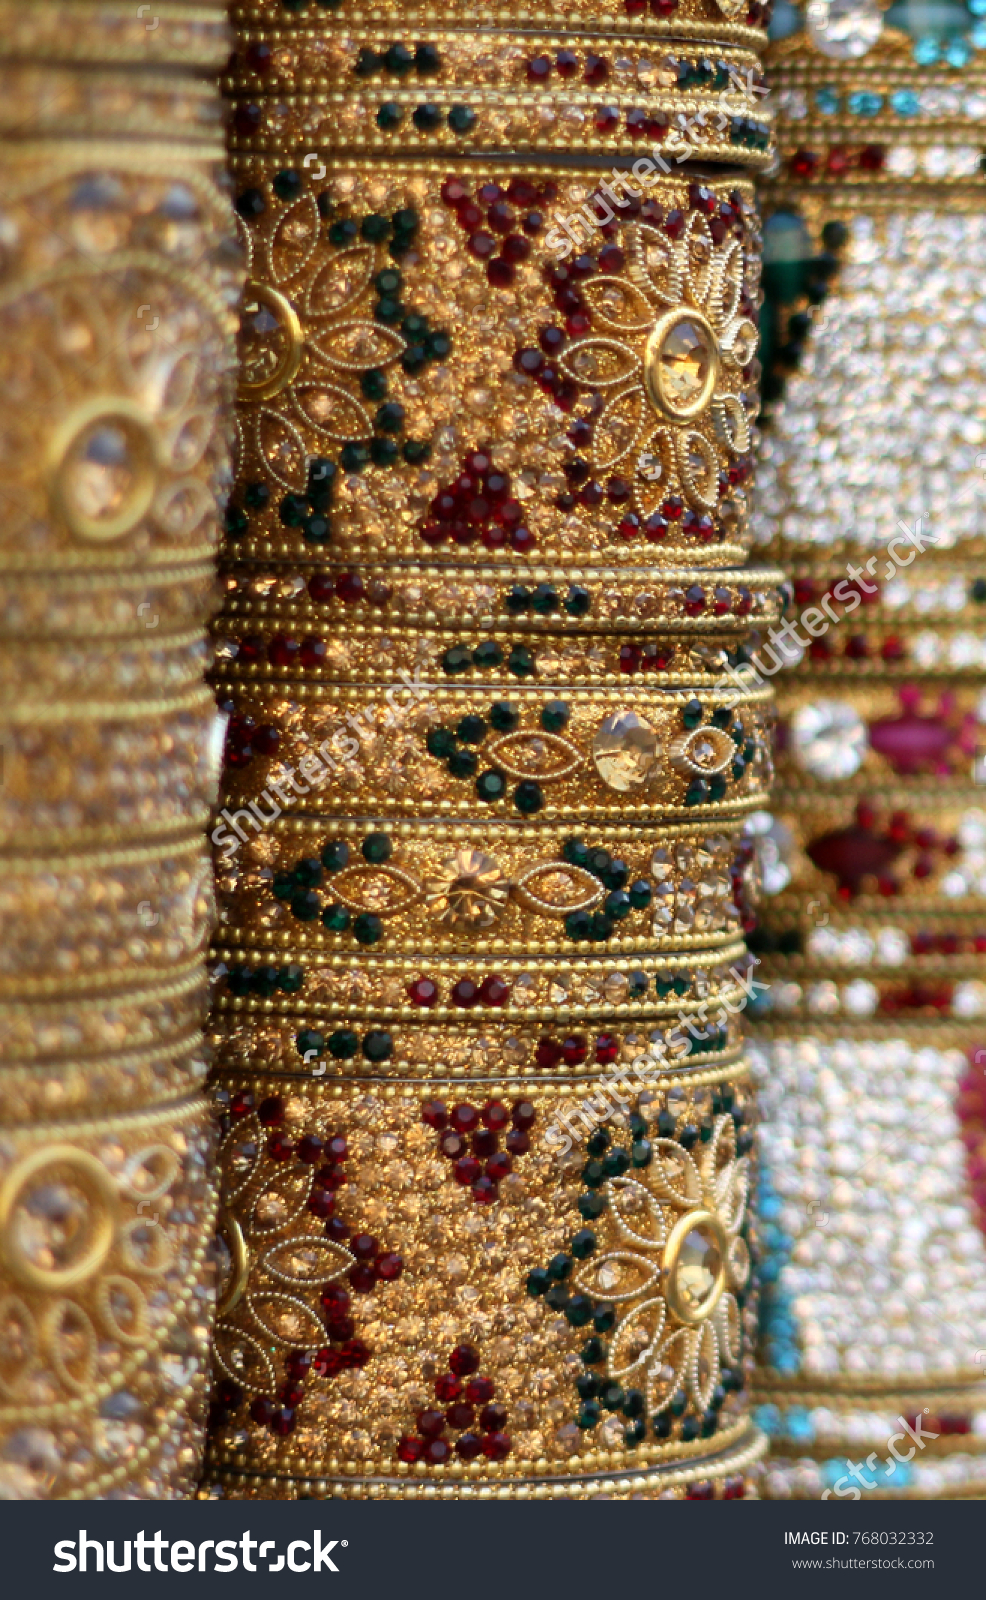 delha public bareilly shop bangles pictures bangle peer panchsheel photos box gallery manufacturers images school bzdet